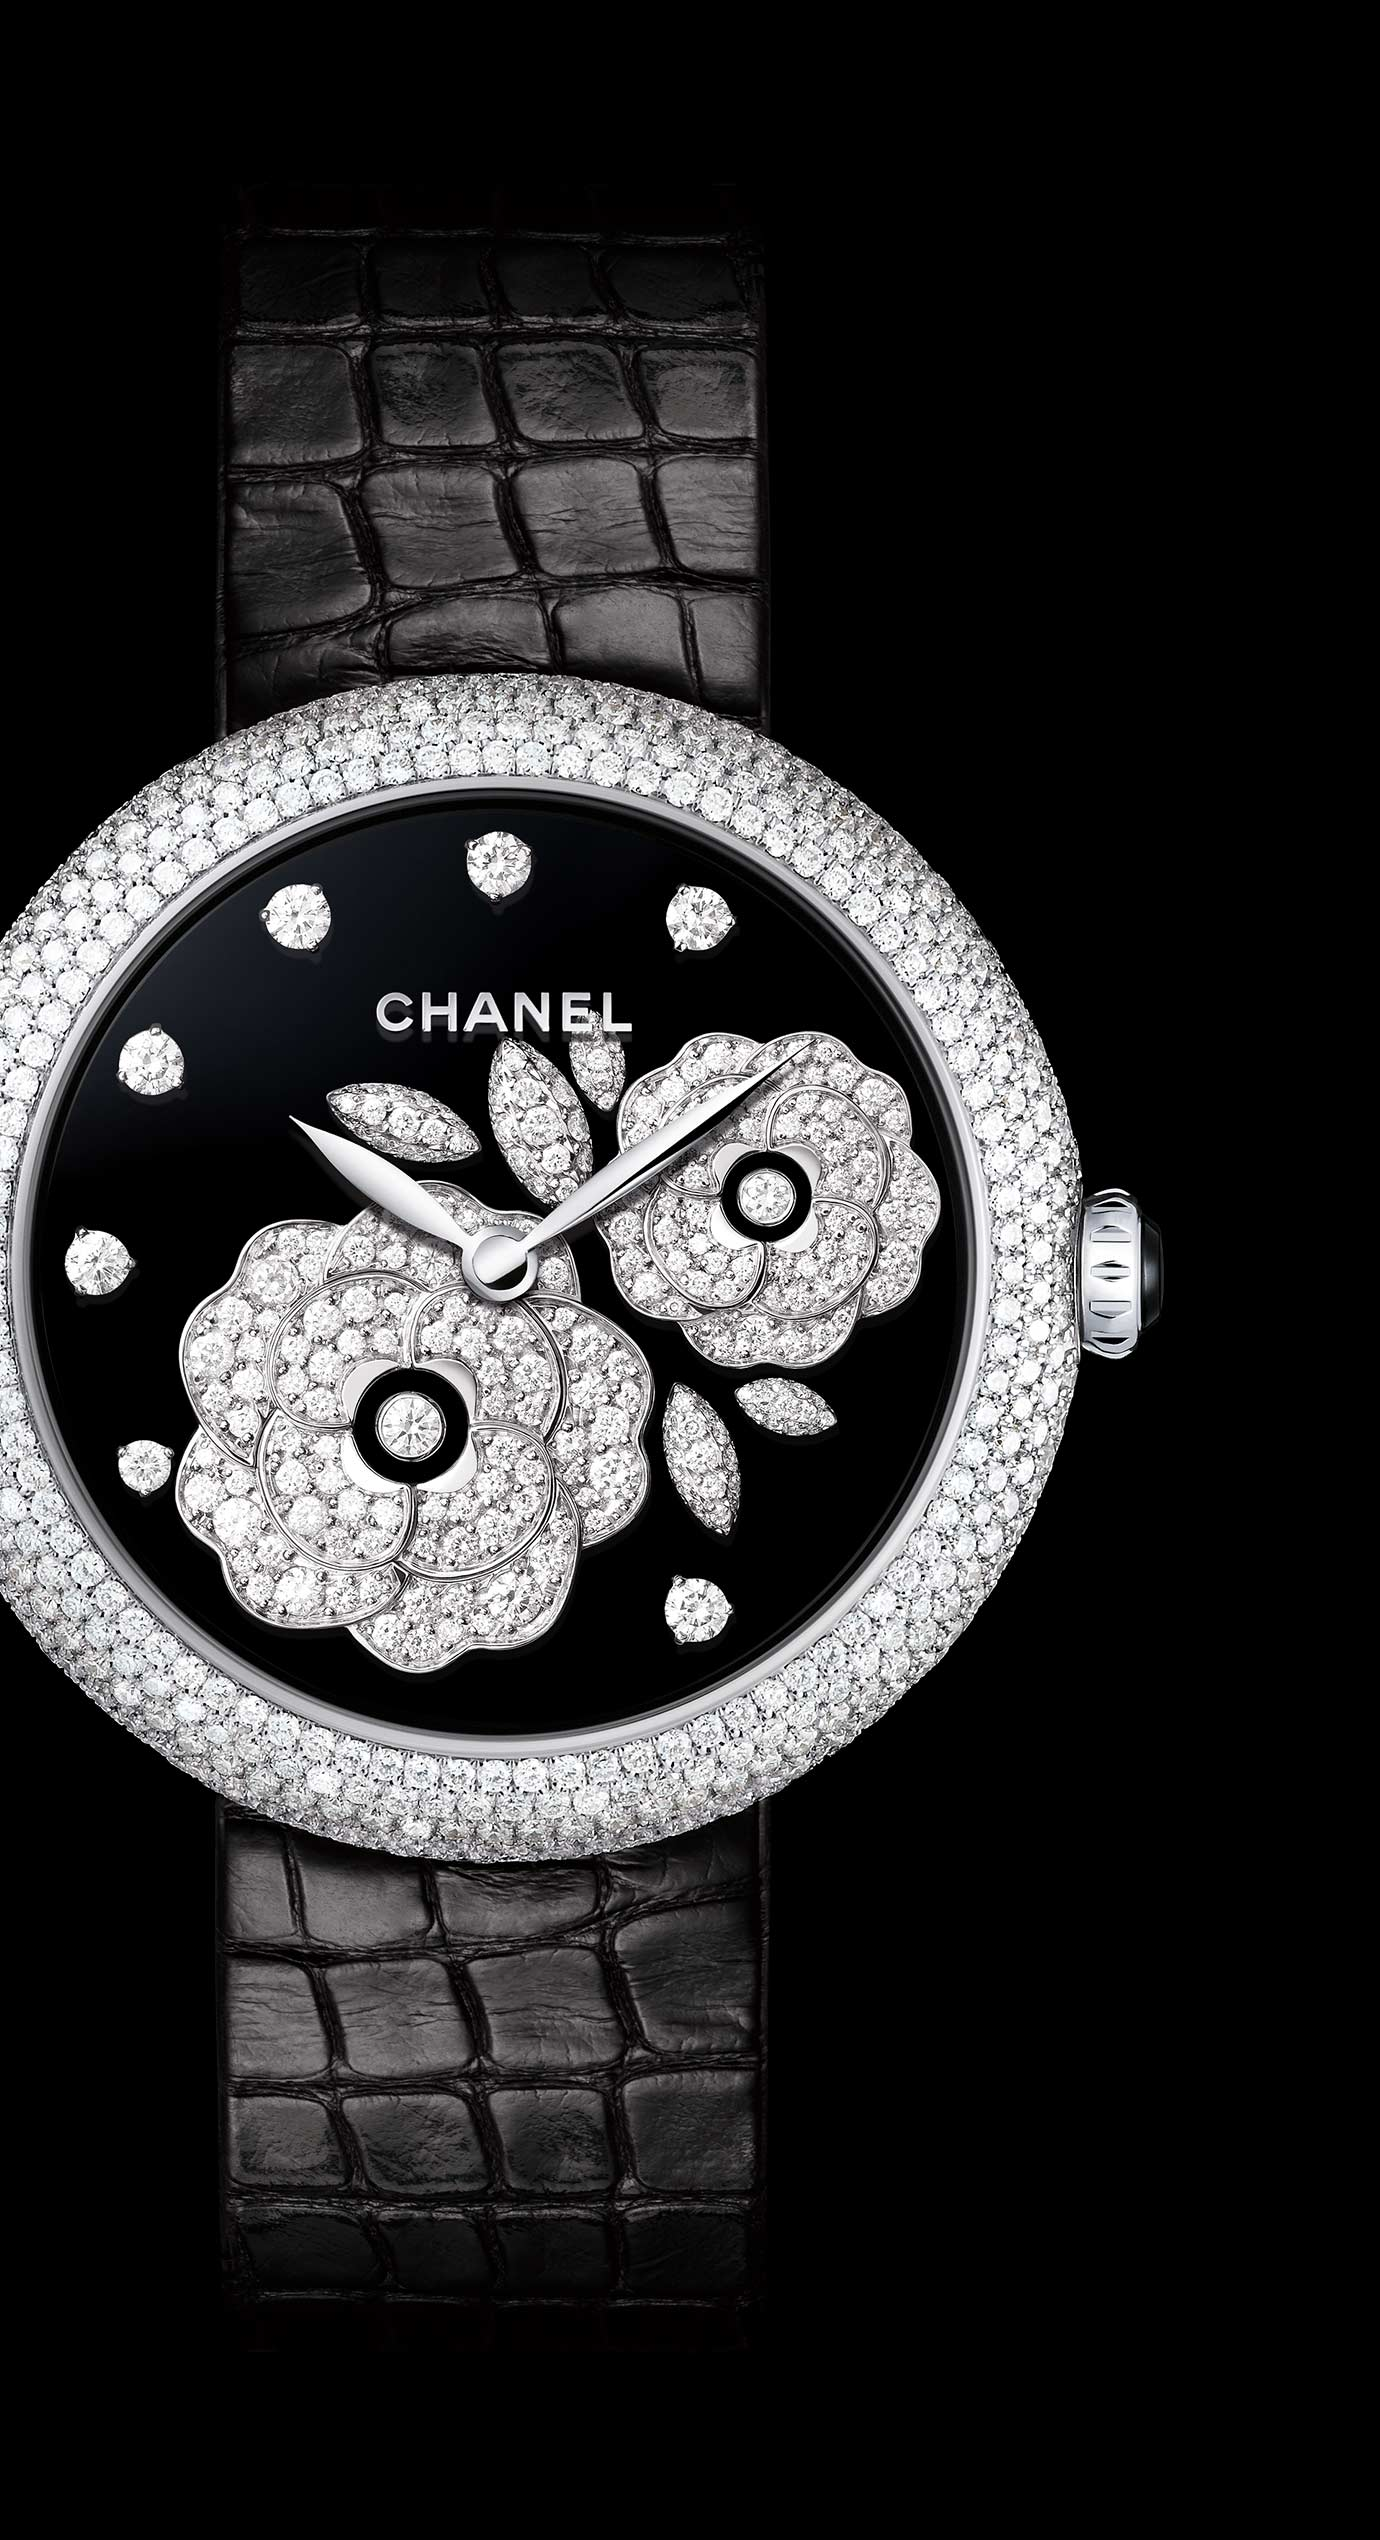 Mademoiselle Privé Bouton de Camélia Fine Jewellery watch - Grand Feu black enamel and diamonds - Enlarged view